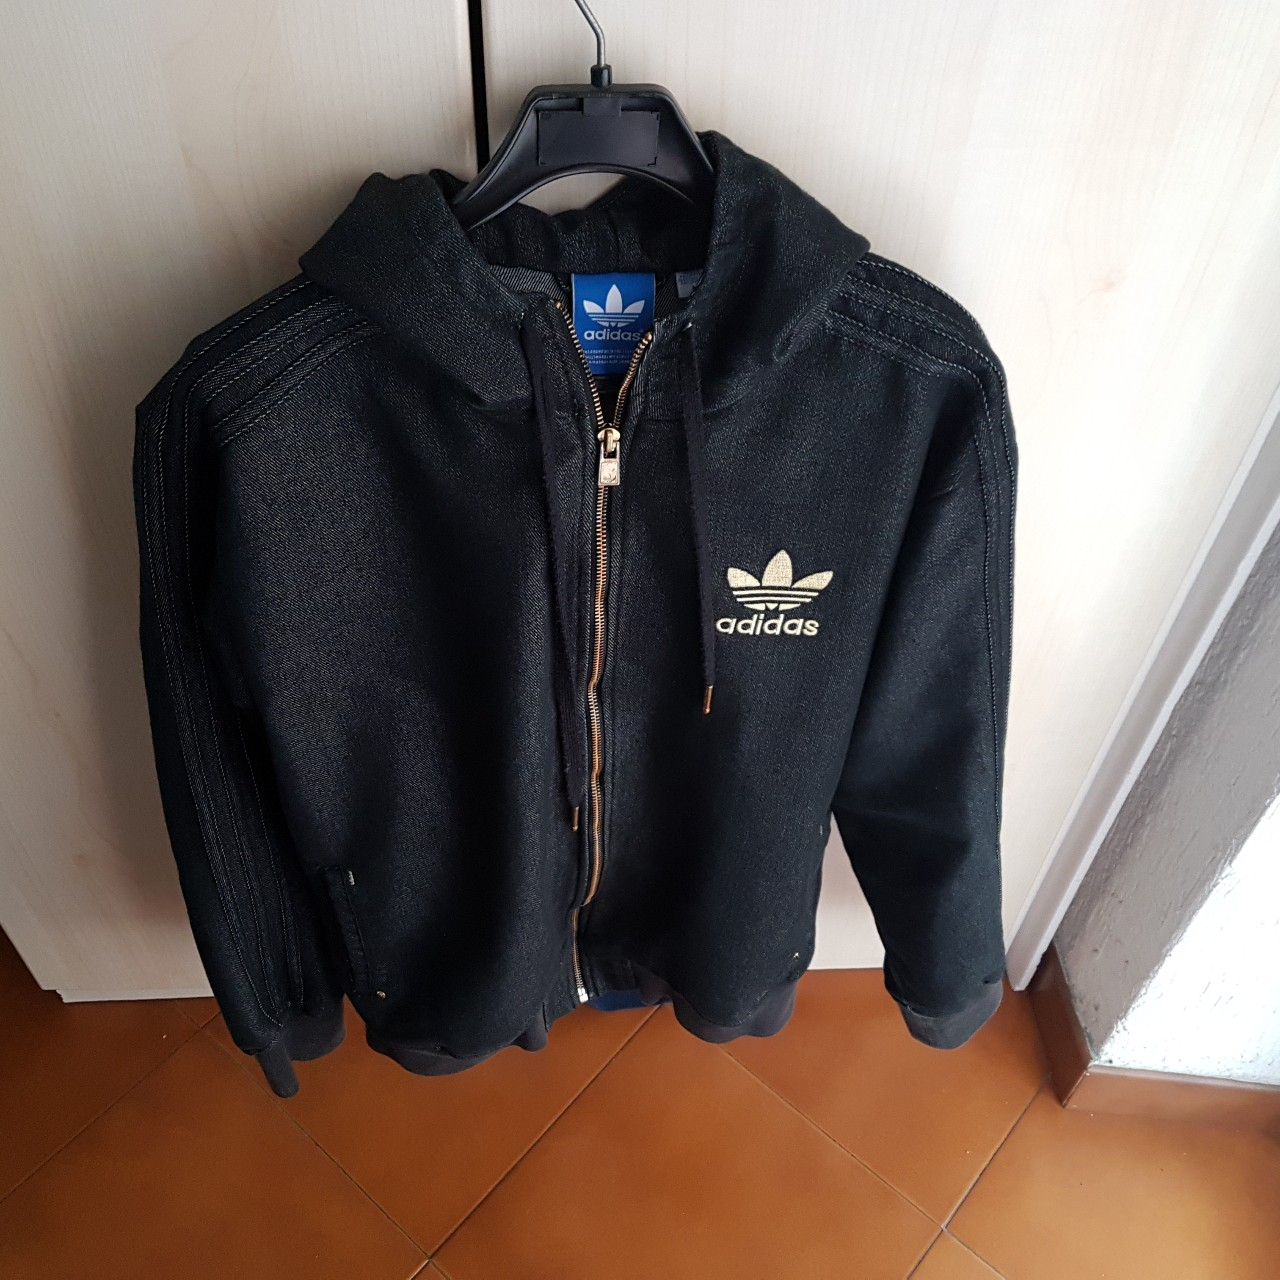 Giacca adidas jeans scuro #adidas #jeans #urban Depop